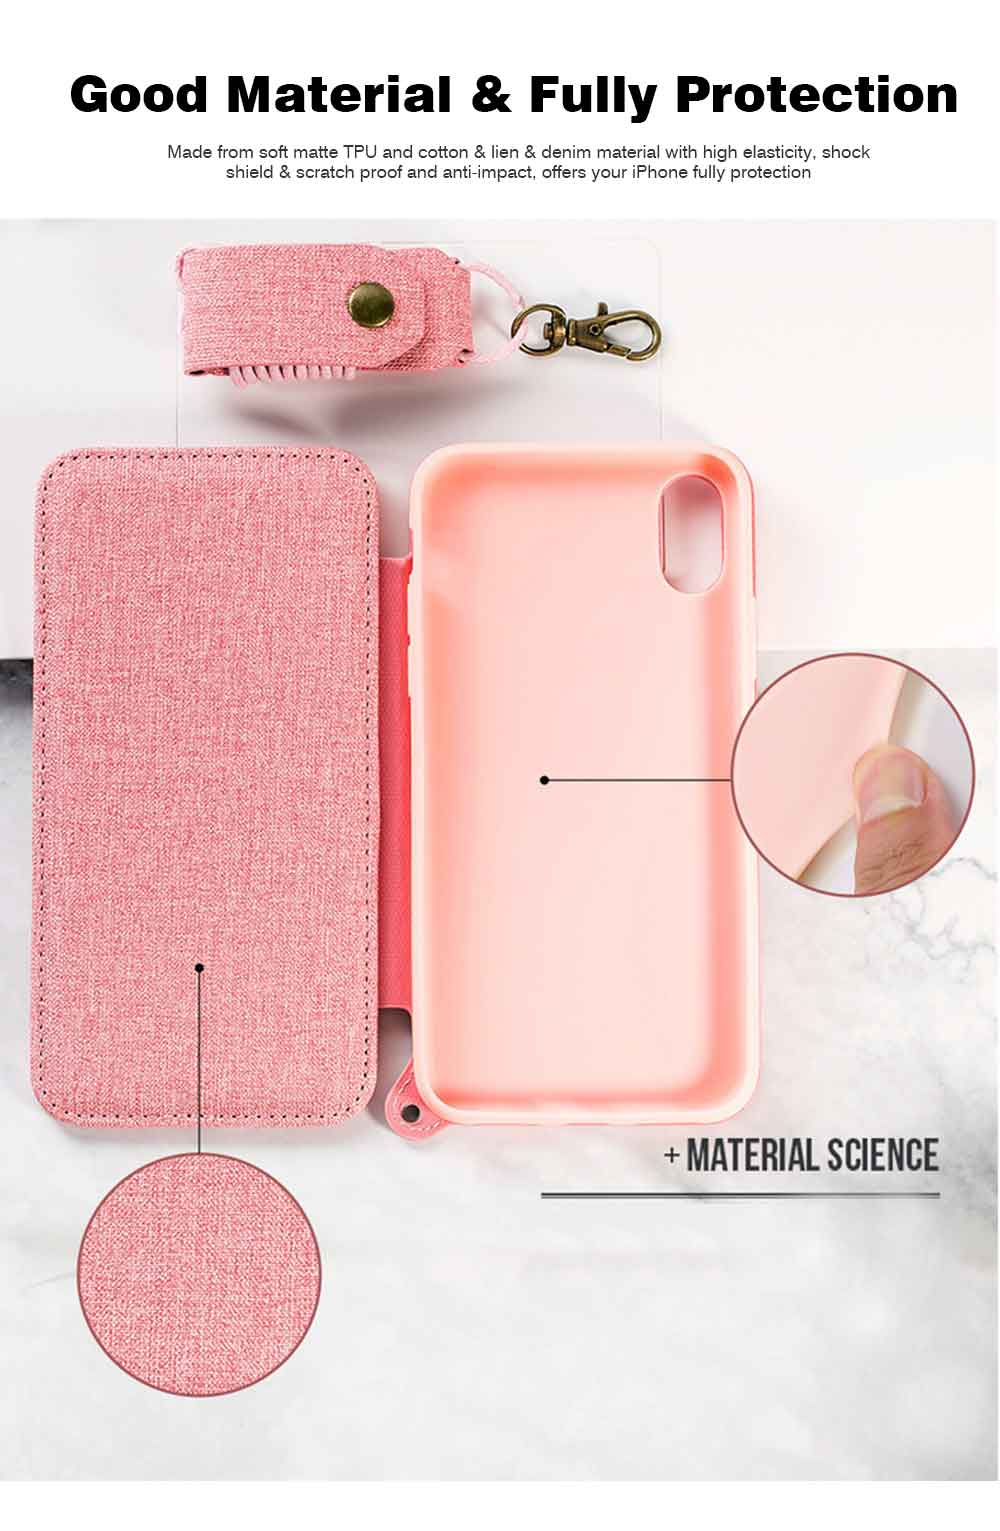 Matte Texture Phone Case with Inside Mirror for iPhone 6,6S,6P,6SP,7,8,7P,8P,X,XS,XS Max,XR Samsung Note 8,S8,S8 Plus, Built-in Mirror Folio Phone Cover 4